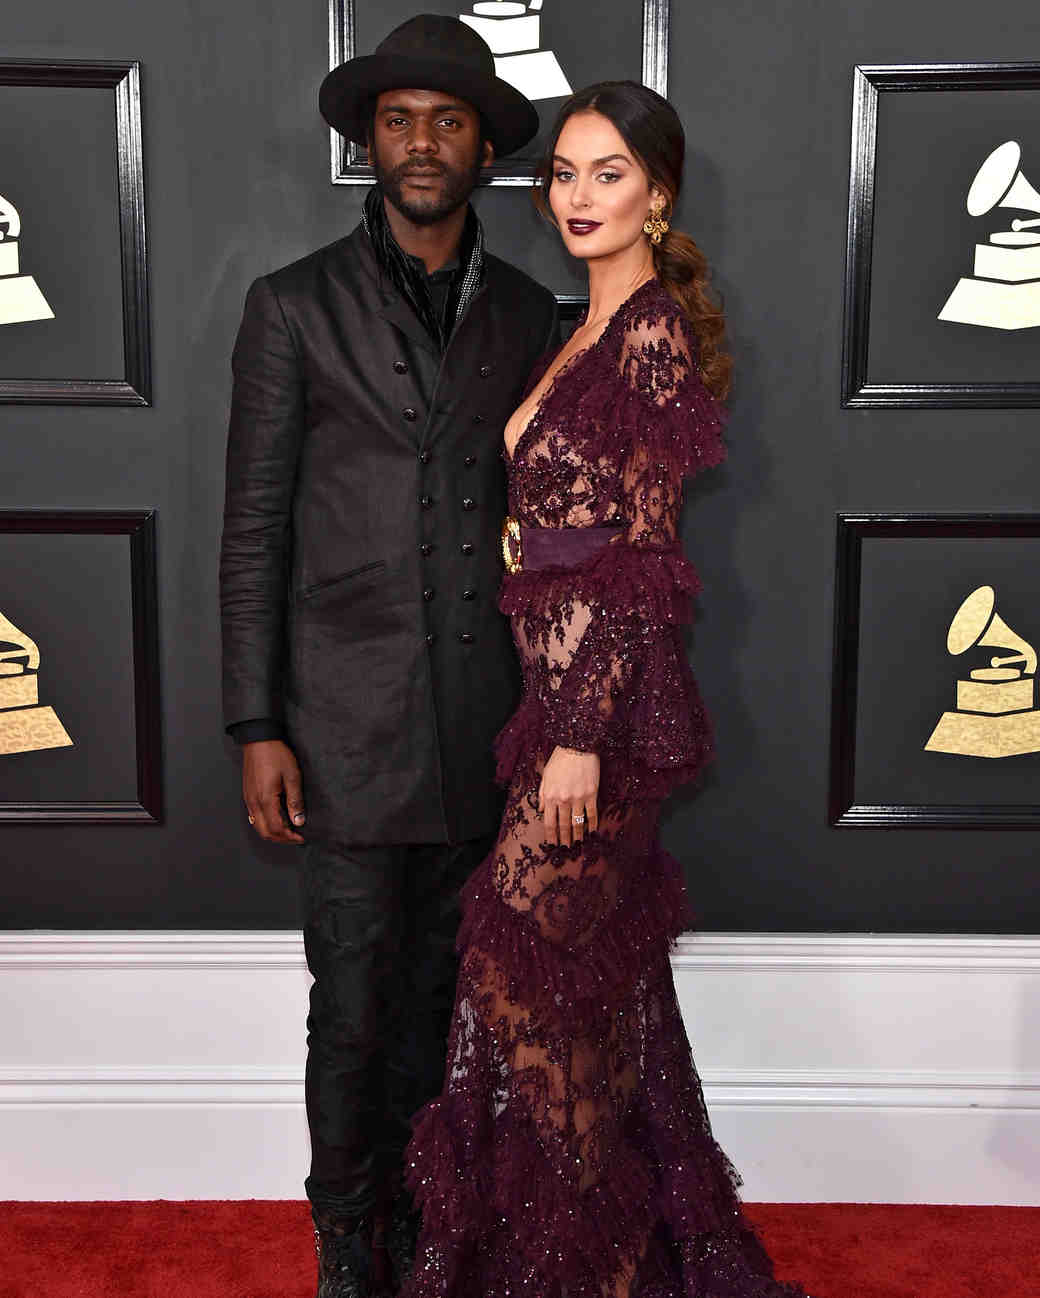 Gary Clark Jr. and Nicole Trunfio at 2017 Grammy Awards